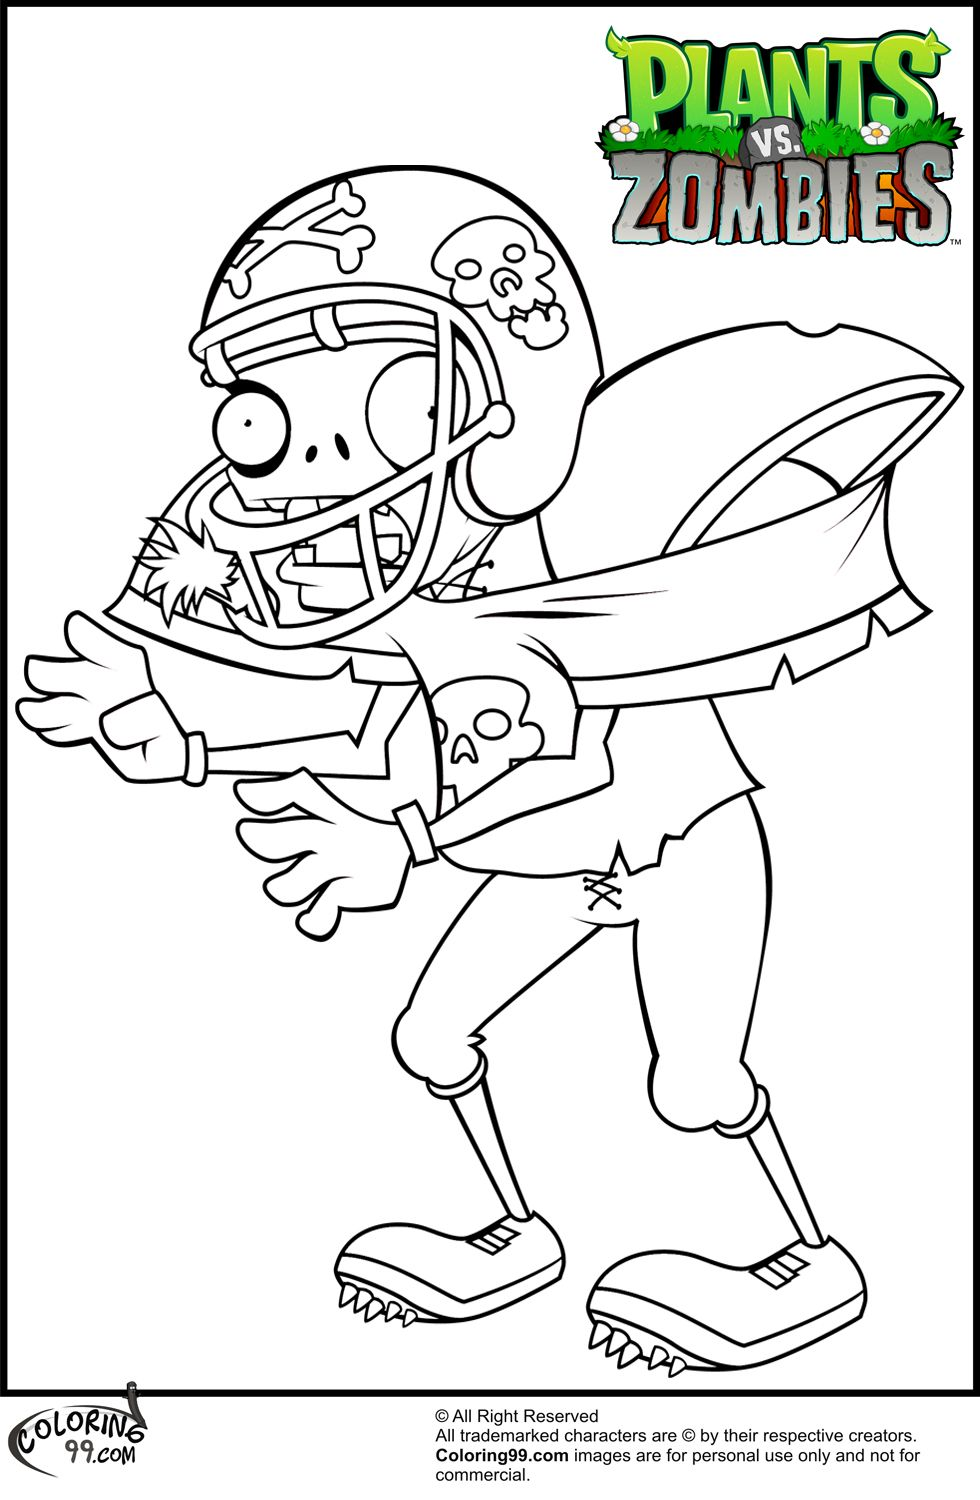 The zombie apocalypse coloring book - Plants Vs Zombies Coloring Pages Team Colors